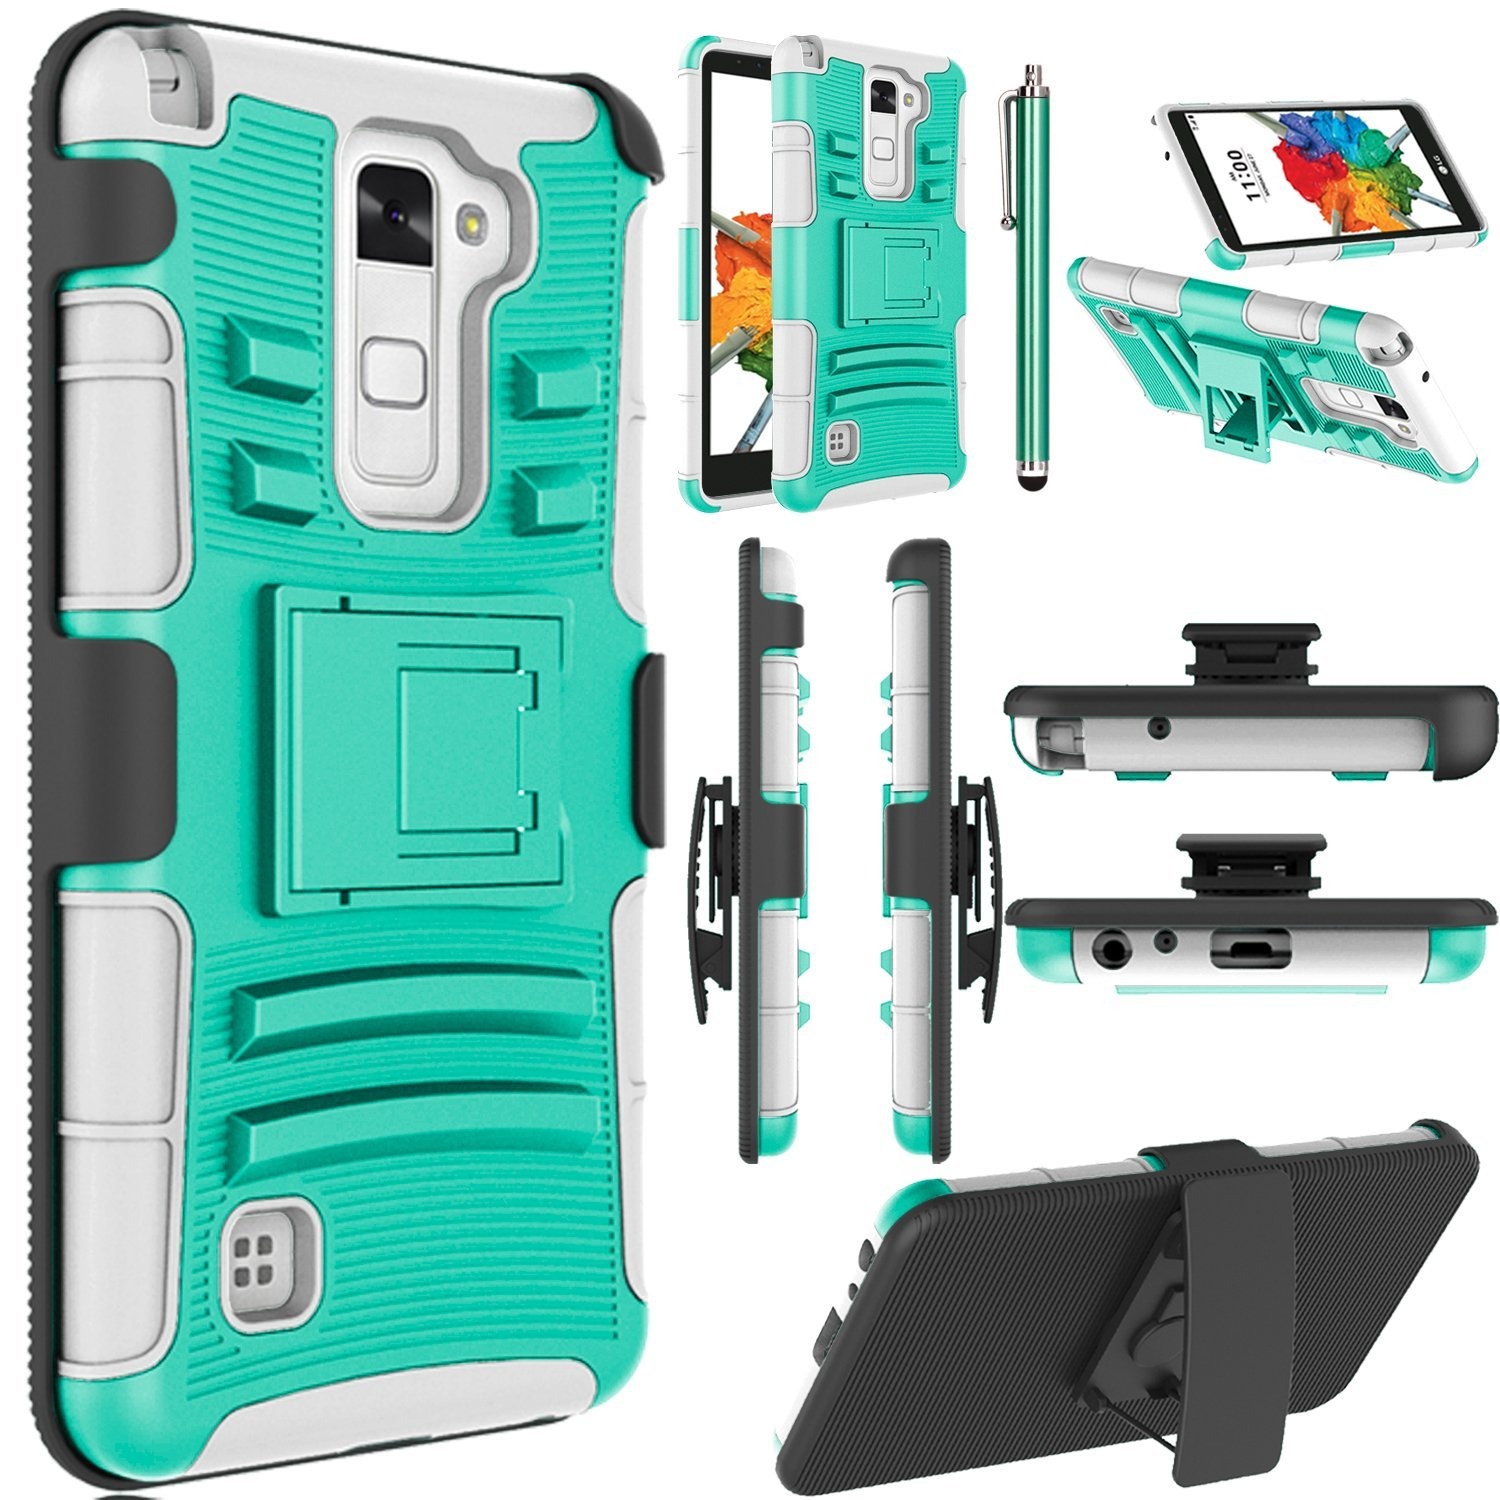 LG Stylo 2 Plus Case, LG Stylus 2 Plus Case, EC™ Dual Layer Rugged Holster Case Cover with Kickstand & Belt Swivel Clip for LG G Stylo 2 Plus / LG Stylus 2 Plus (Turquoise+Grey)